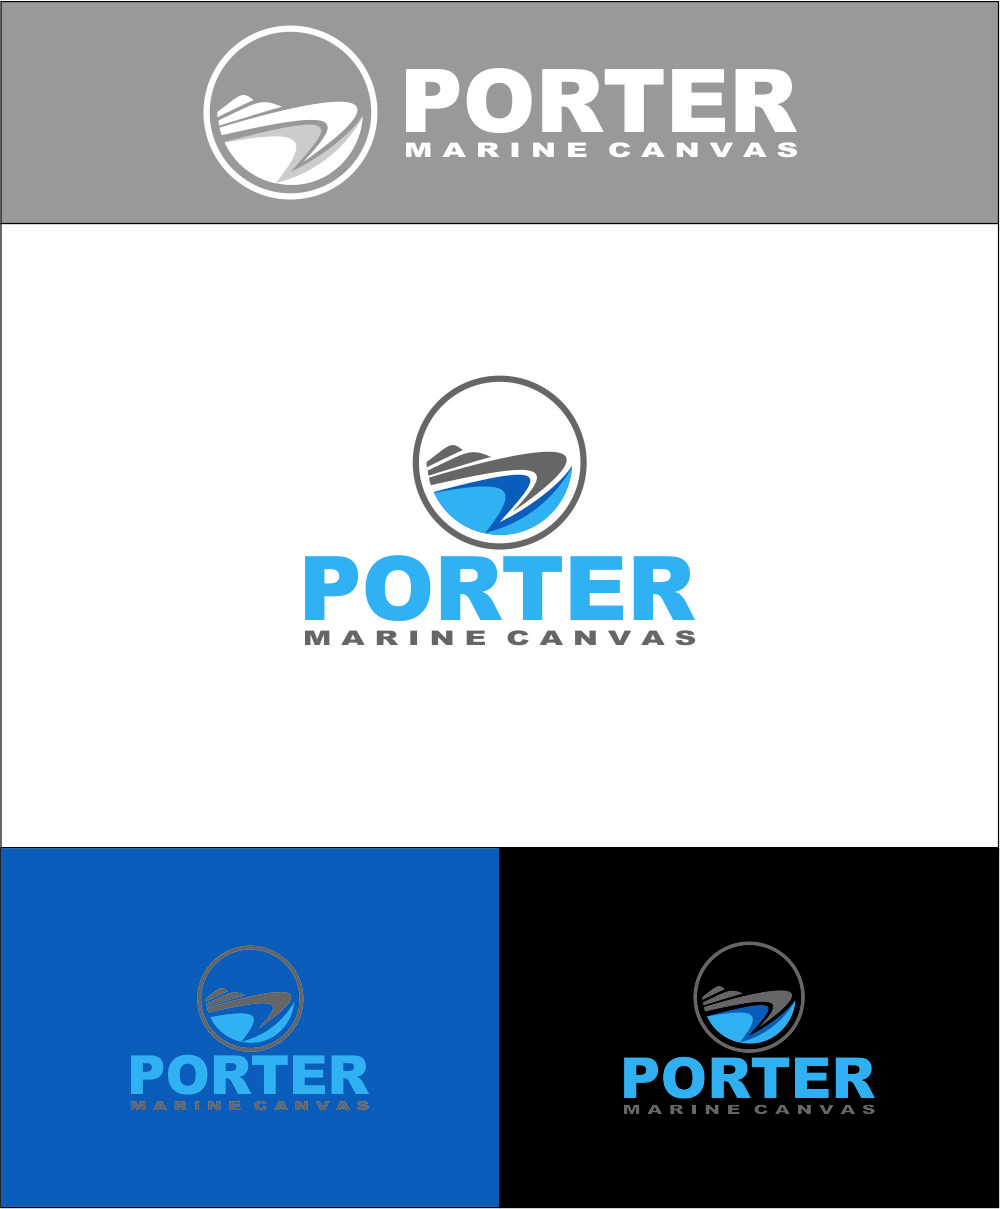 Logo Design by Agus Martoyo - Entry No. 213 in the Logo Design Contest Imaginative Logo Design for Porter Marine Canvas.